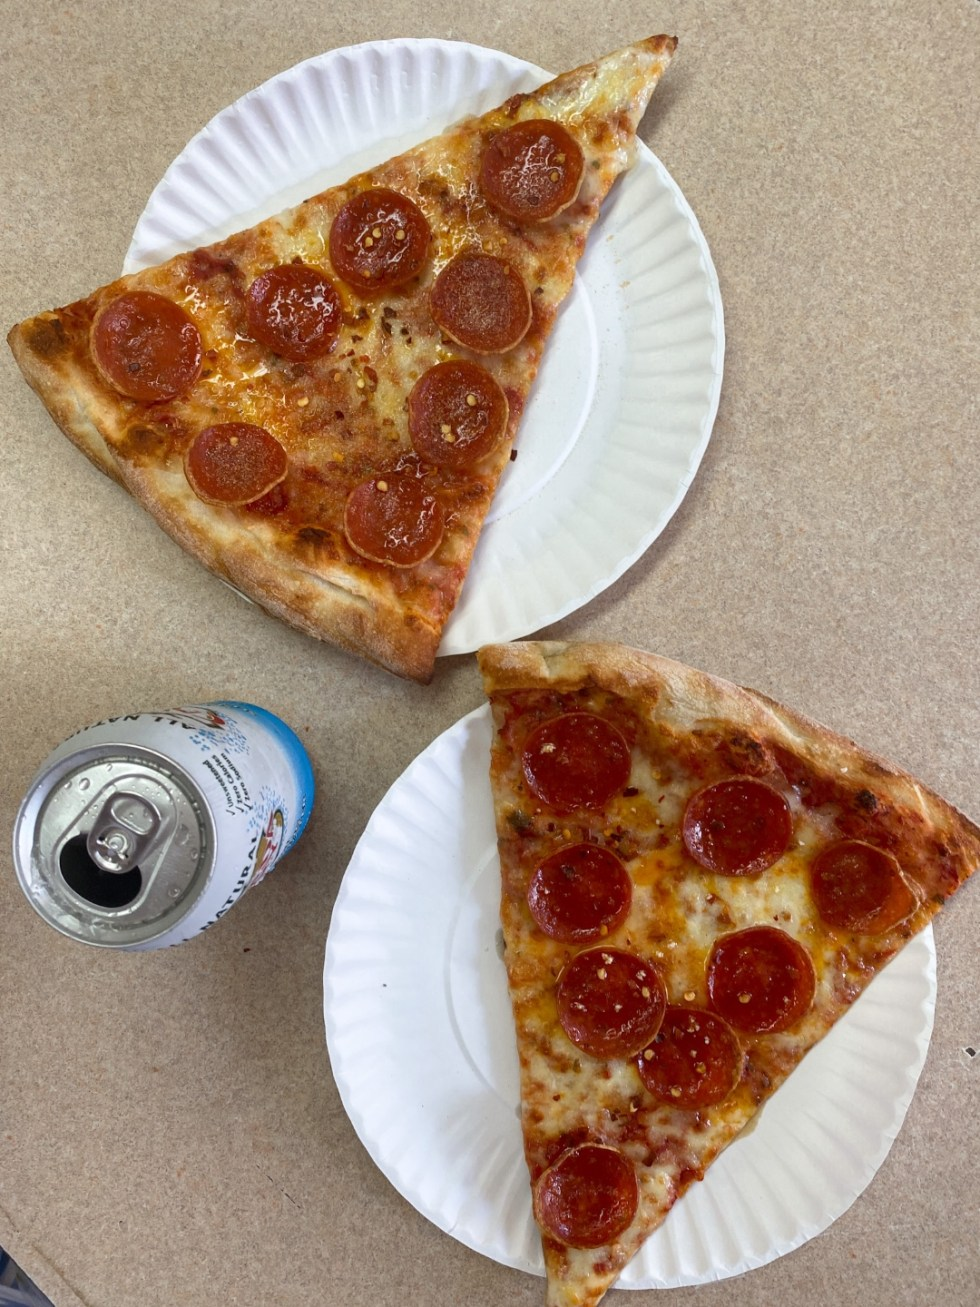 NYC Summer Weekend: Things to Do in NYC in the Summer - I'm Fixin' To - @imfixintoblog   NYC Summer Weekend by popular NC travel blog, I'm Fixin' To: image of two slices of pepperoni pizza.